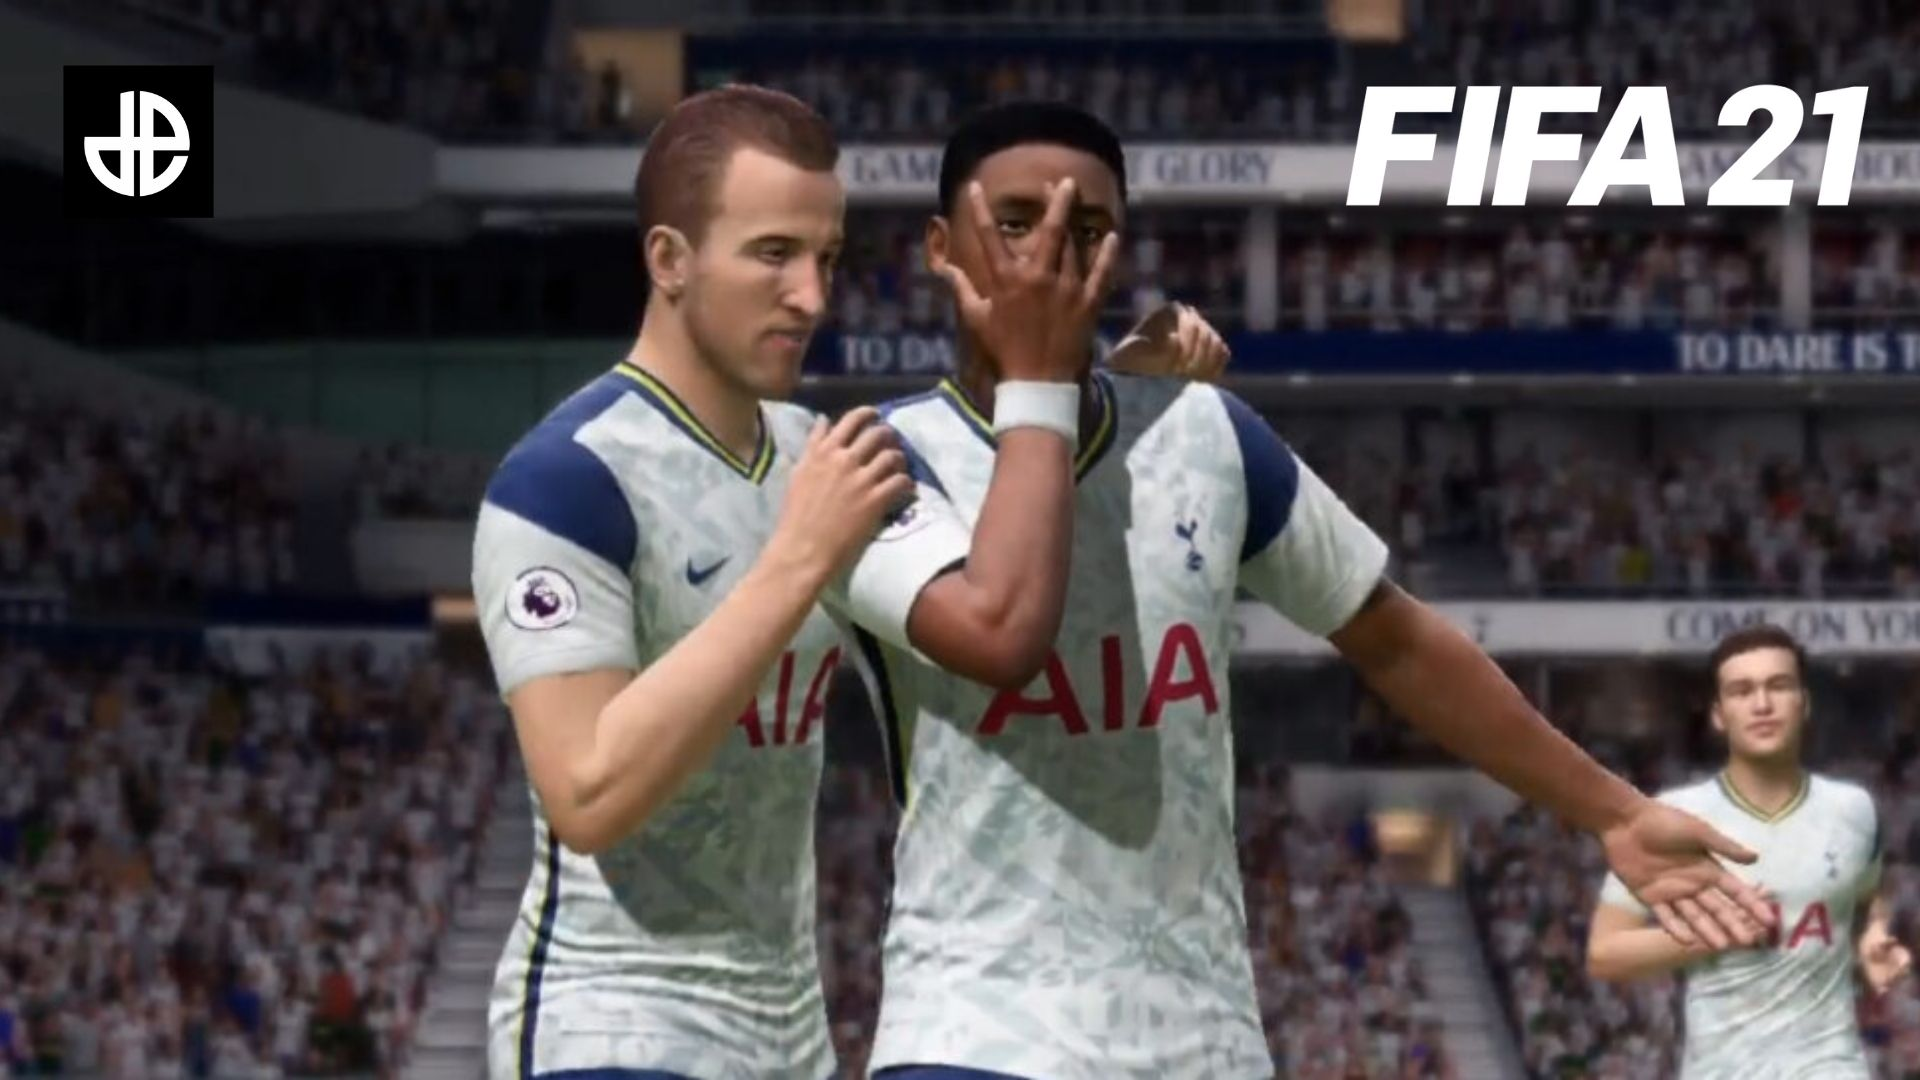 Spurs players celebrating in FIFA